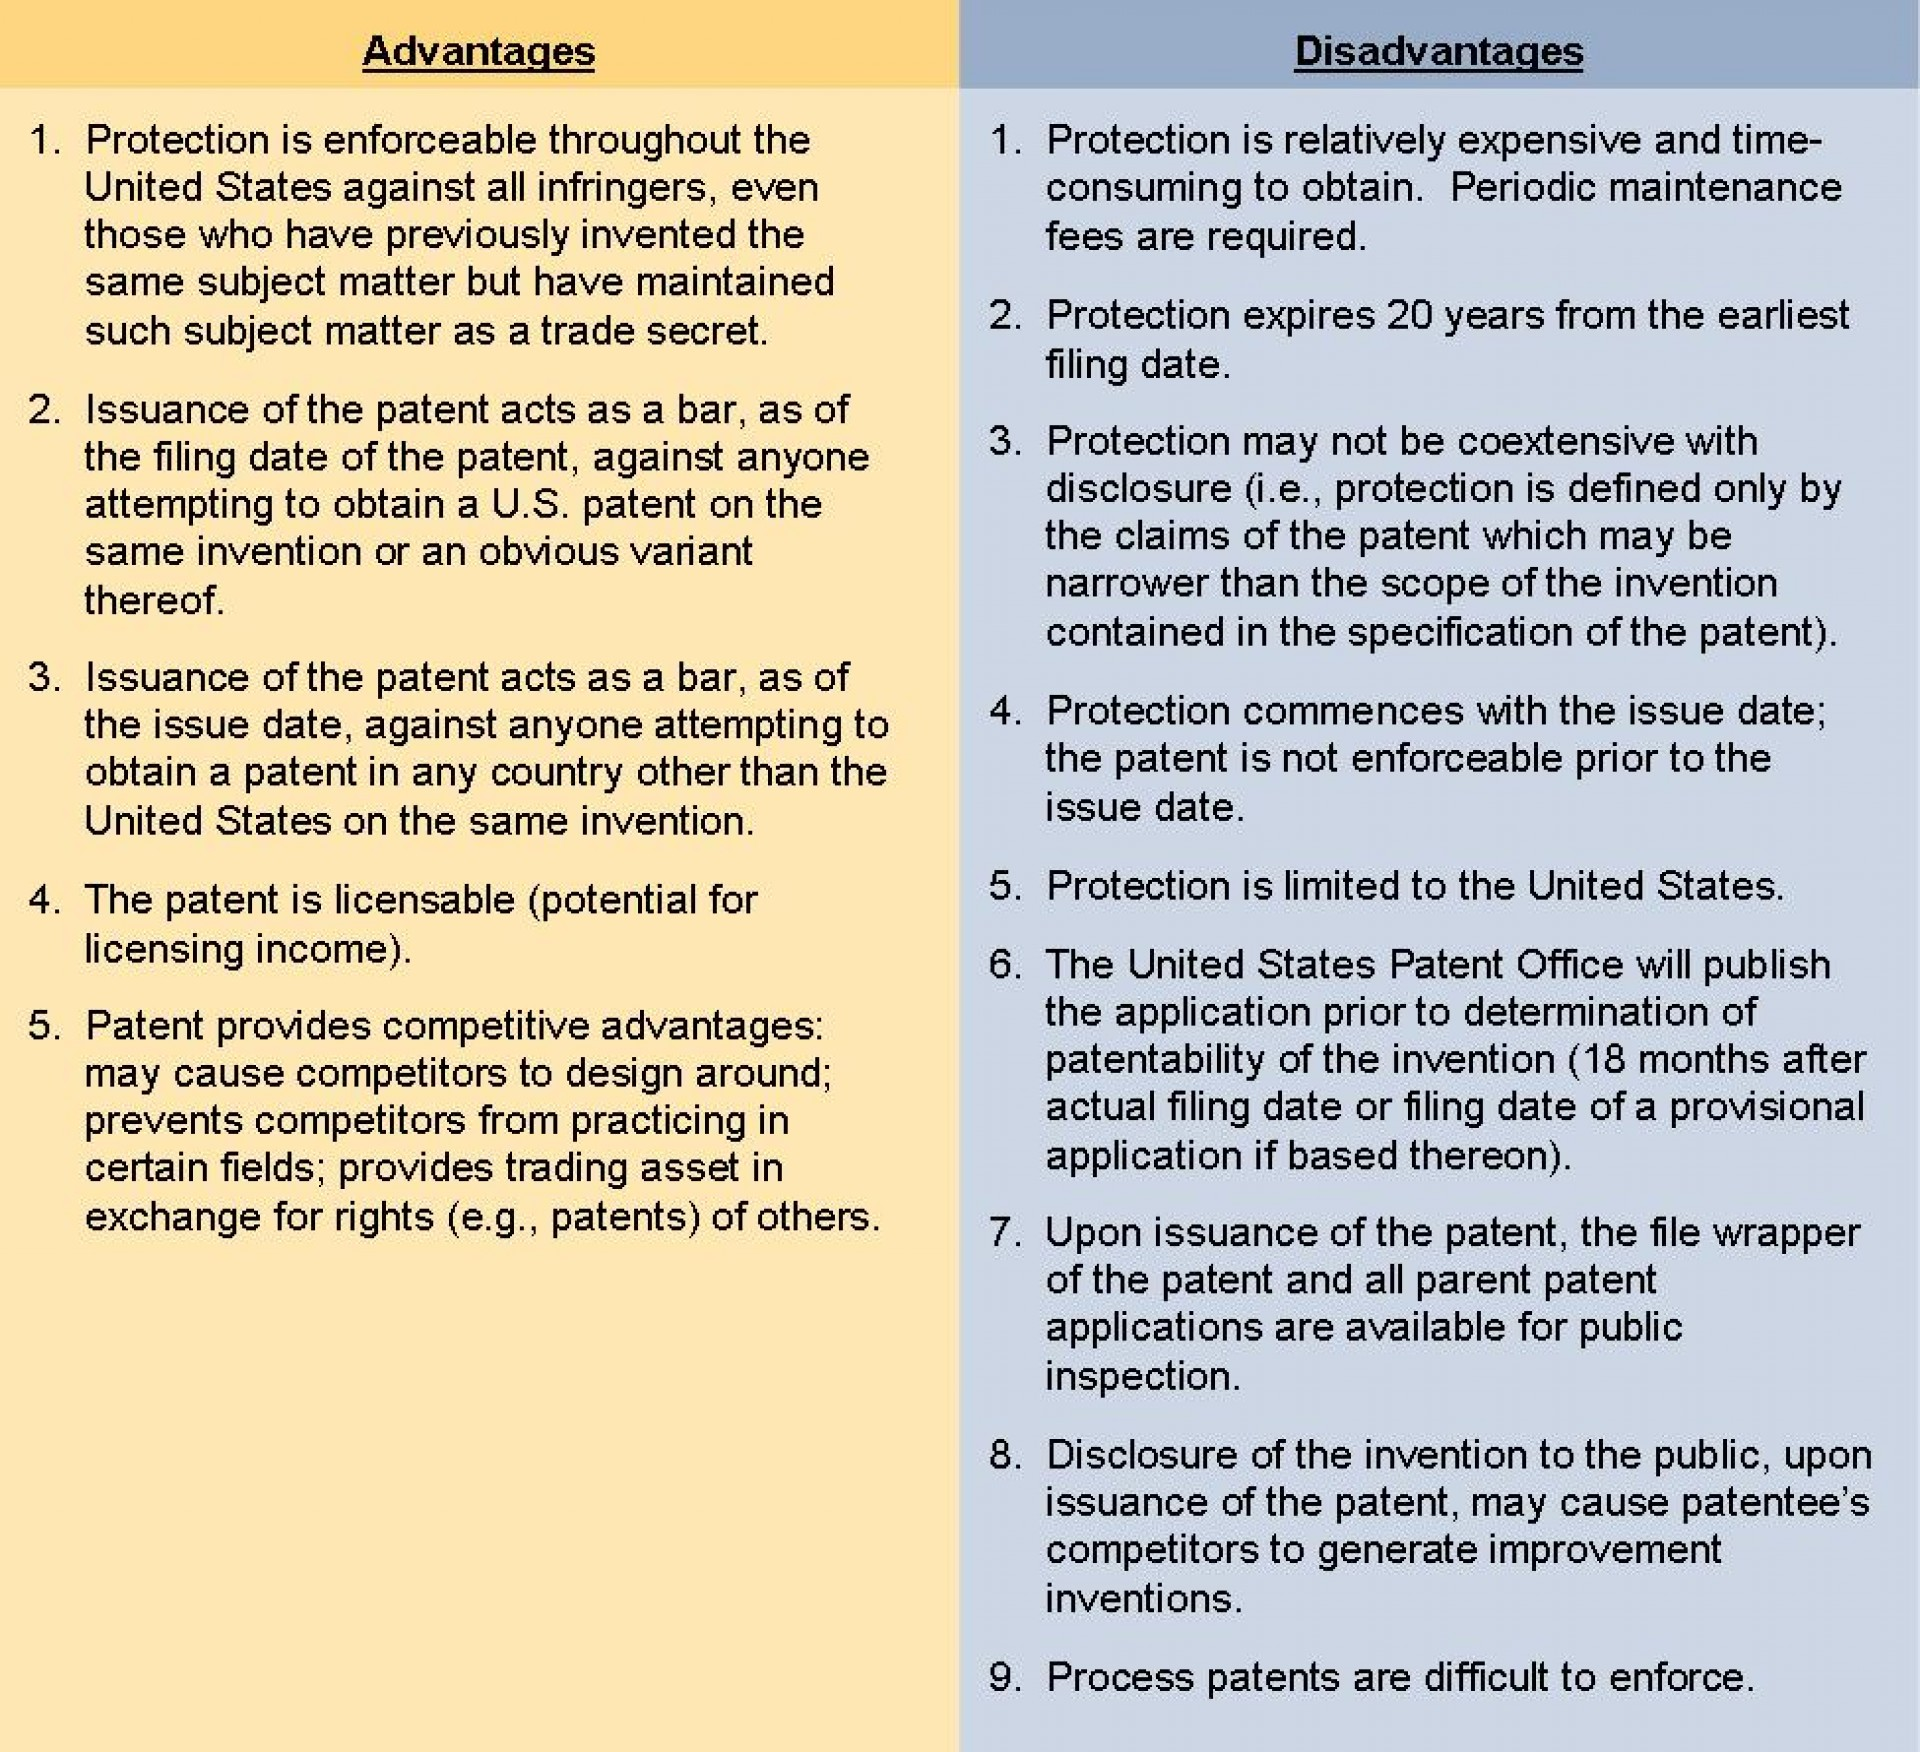 027 News87pic2 Advantage And Disadvantage Of Science Essay Shocking Advantages Disadvantages In Tamil Pdf Hindi 1920